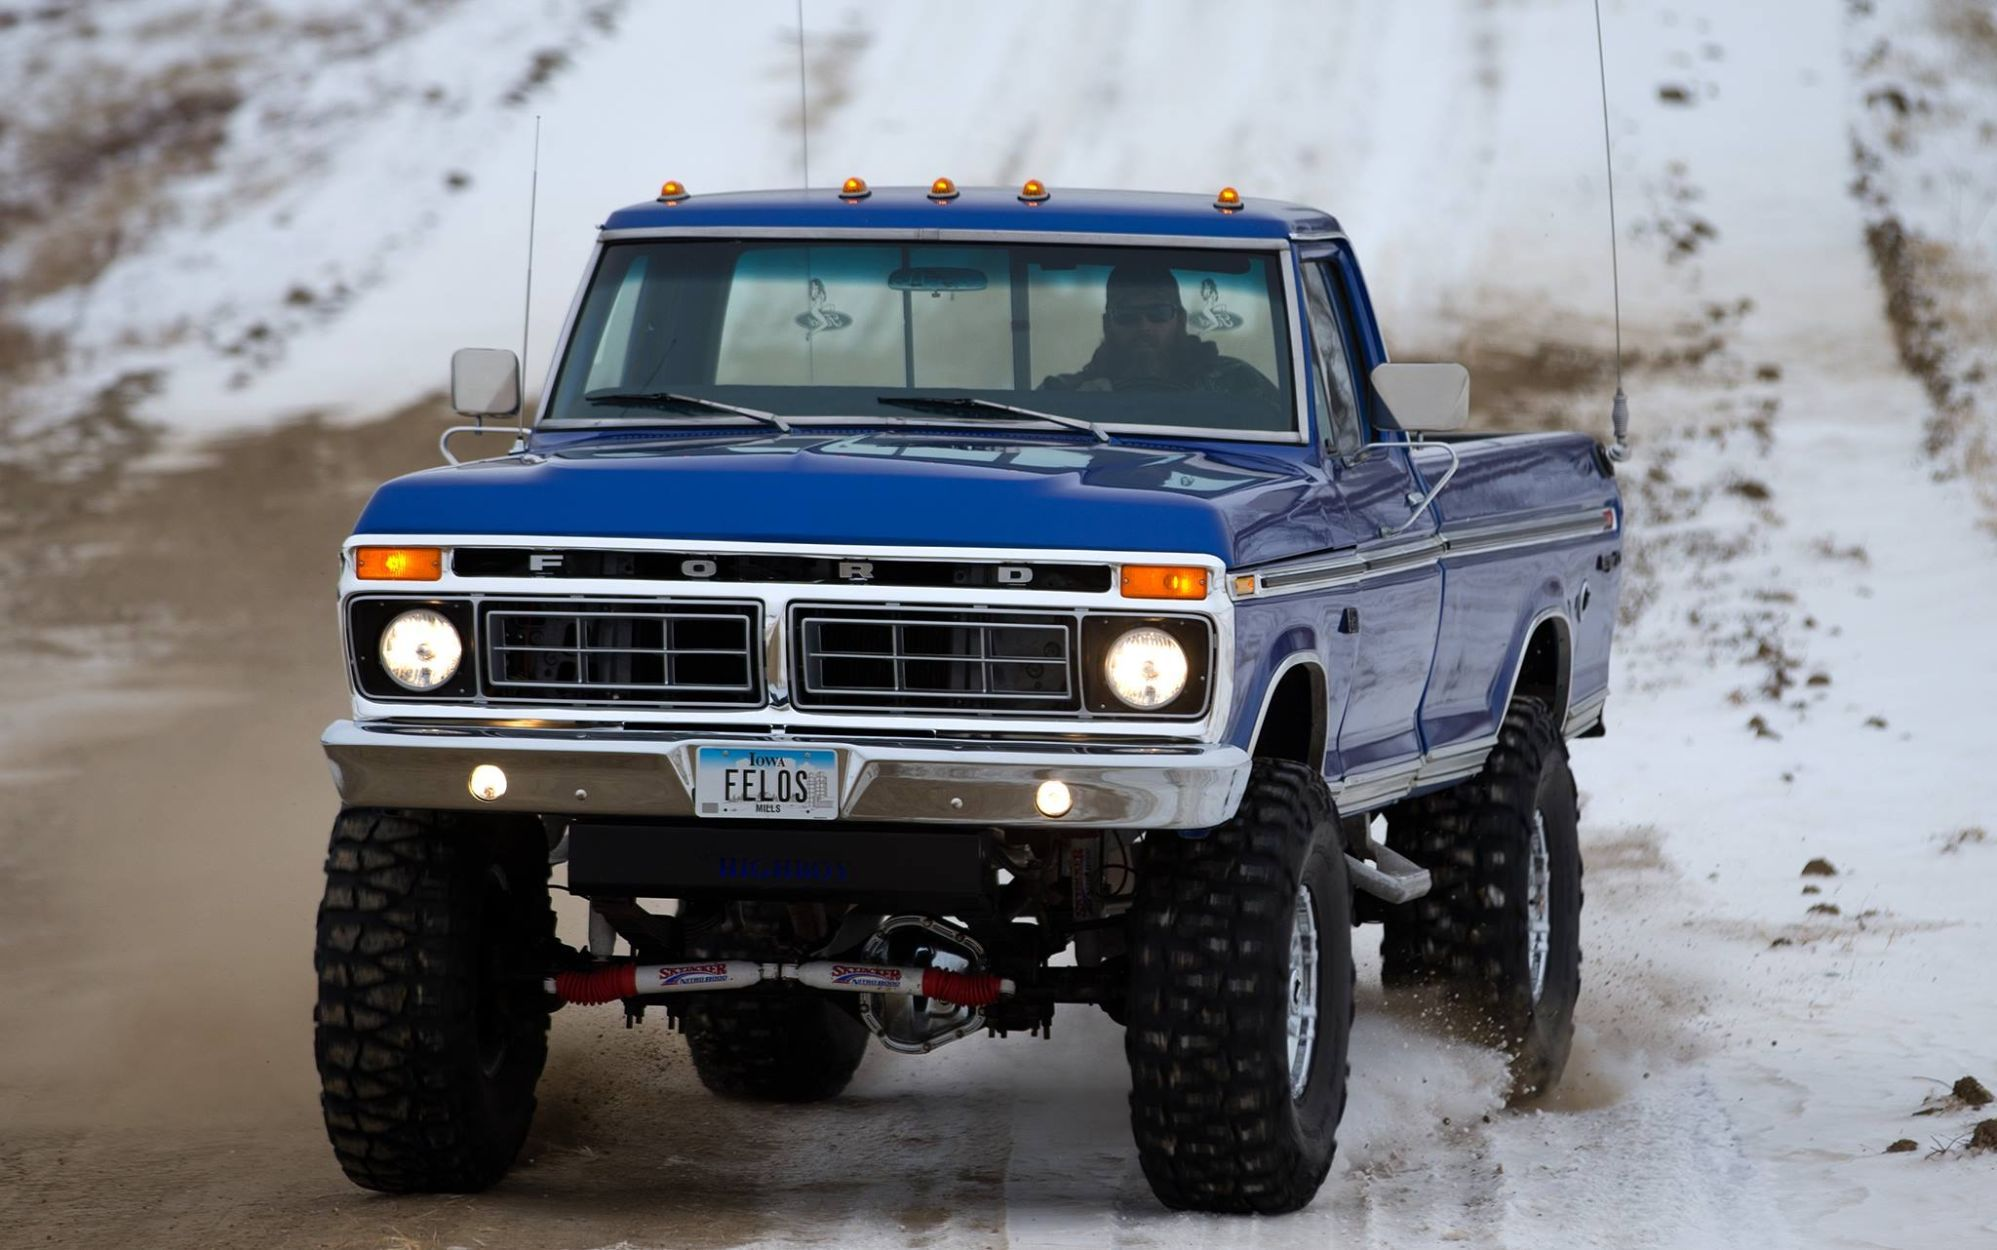 Nice Looking Blue Highboy Ford In The Looks Just Likek E Our 76